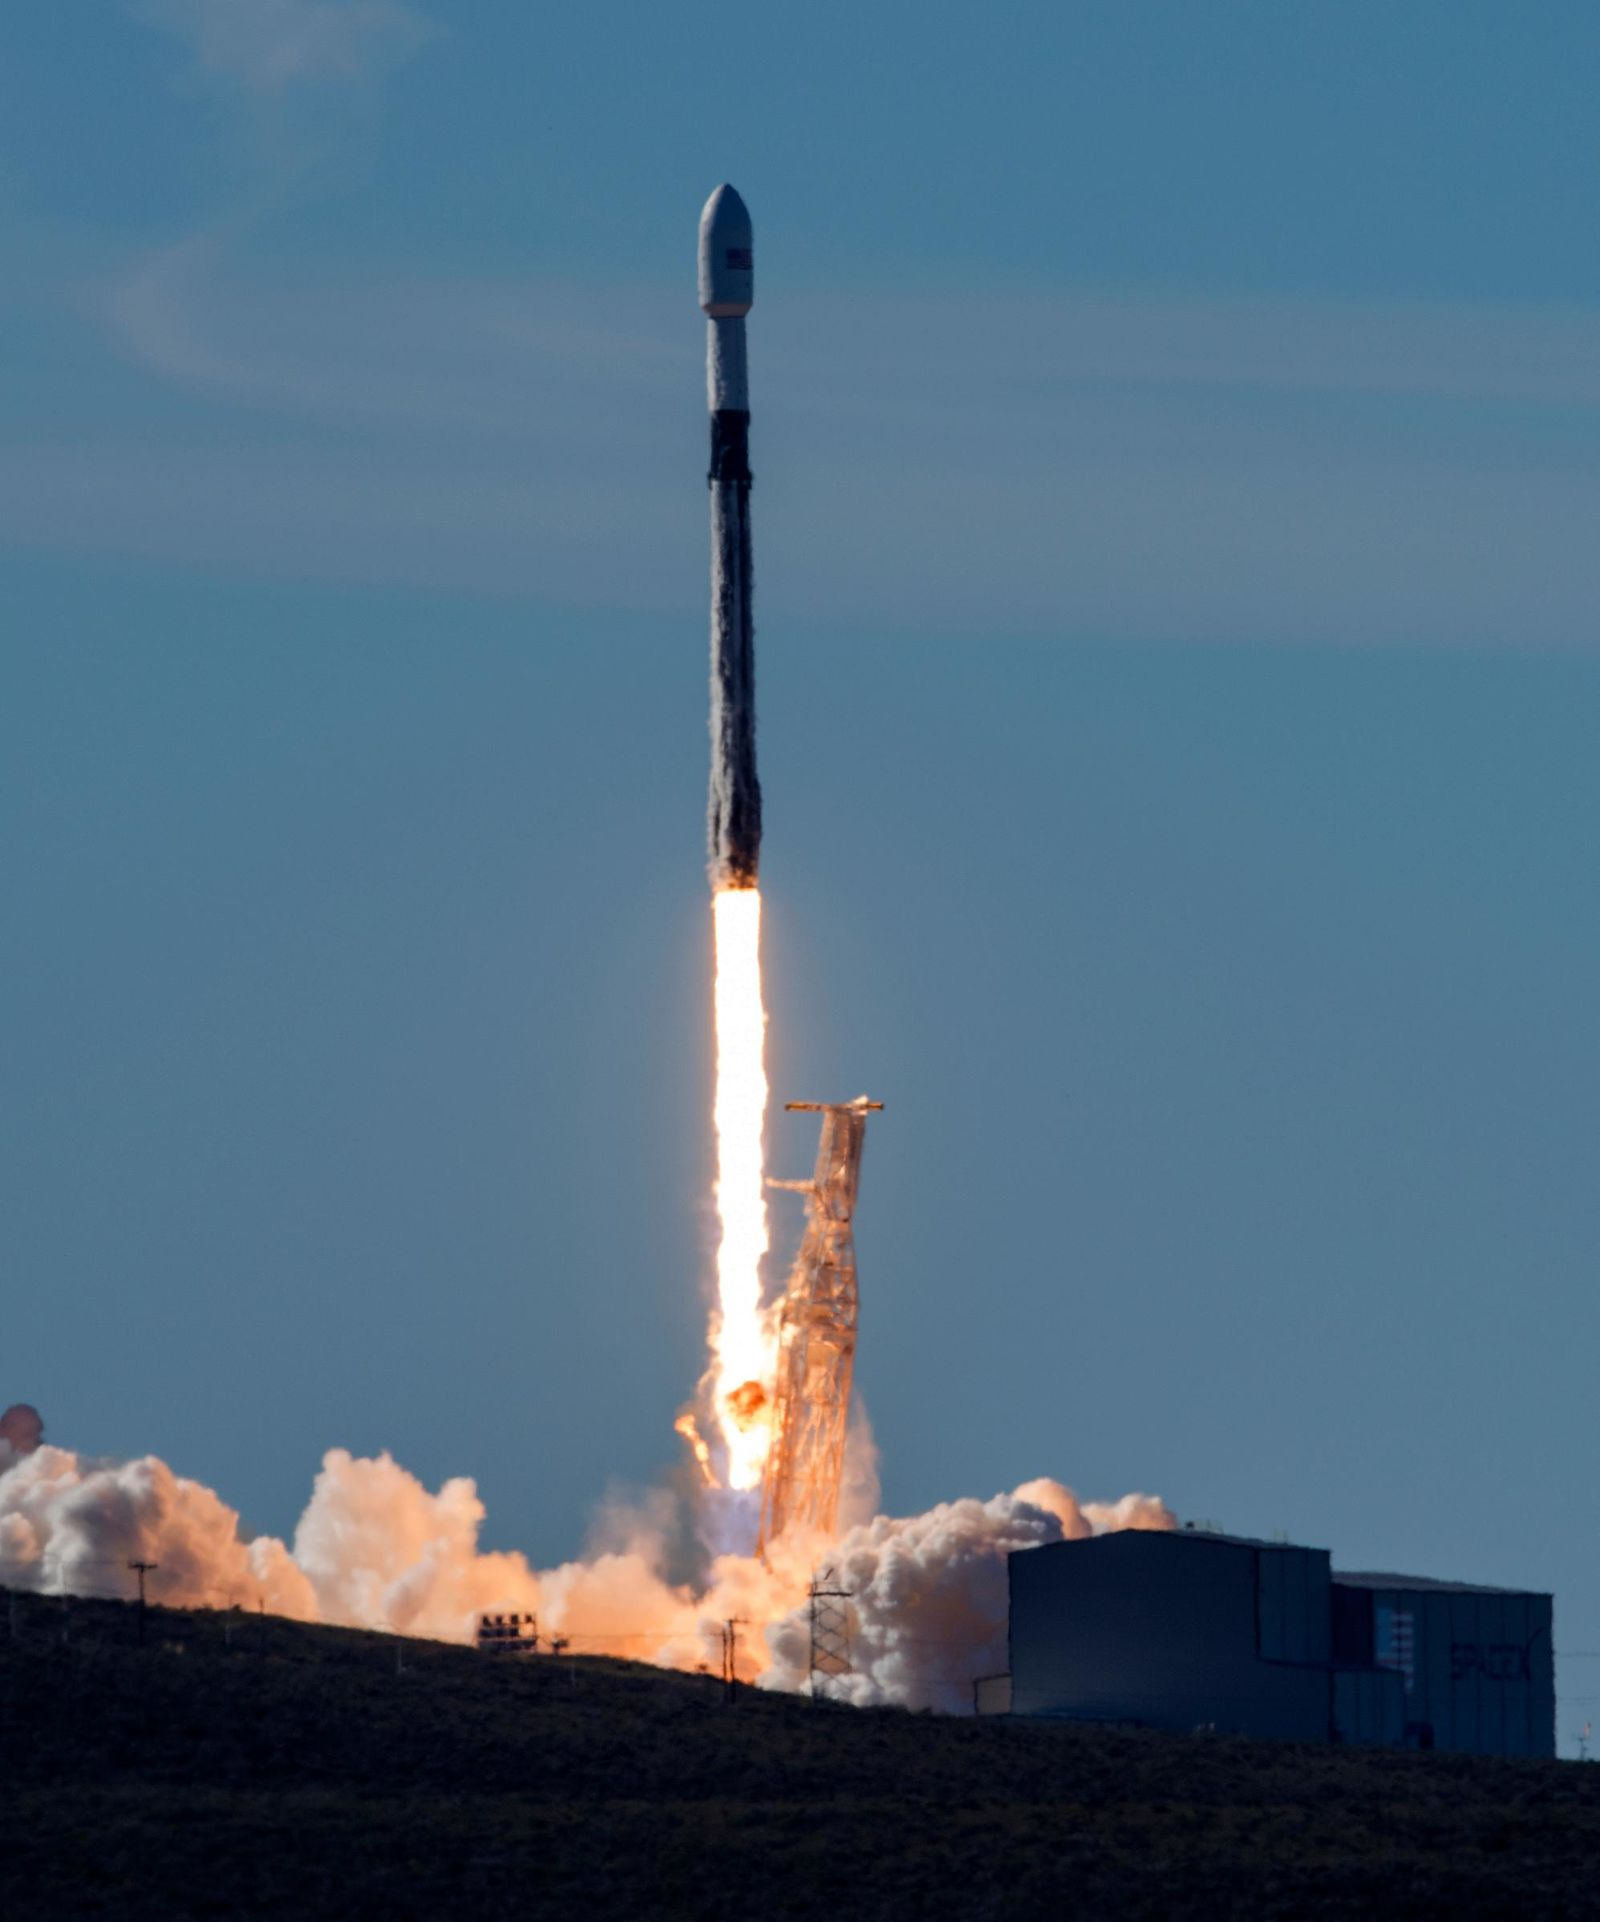 FILE - In this Dec. 3, 2018, file photo, In this photo provided by the U.S. Air Force, a SpaceX Falcon 9 rocket, carrying the Spaceflight SSO-A: SmallSat Express, launches from Space Launch Complex-4E at Vandenberg Air Force Base, Calif.{ } (Senior Airman Clayton Wear/U.S. Air Force via AP, File)